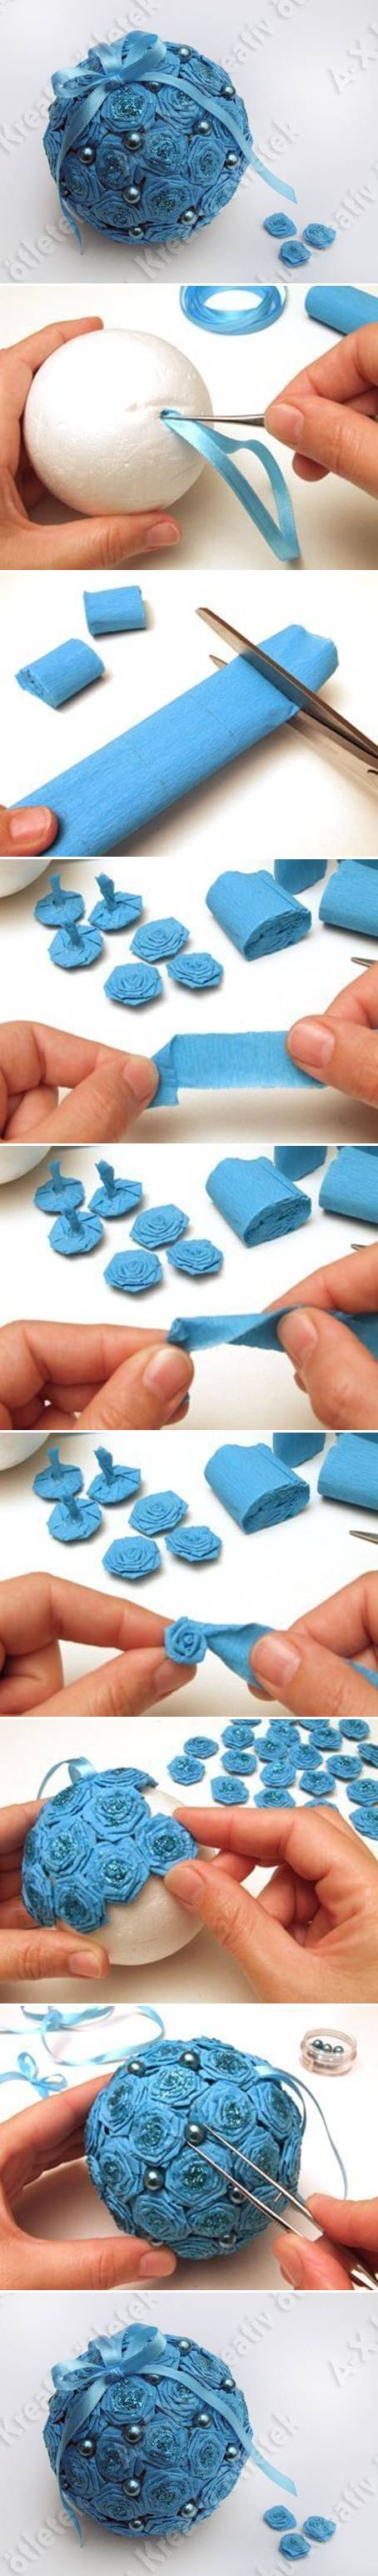 How to make Crepe Paper Flower Ball step by step DIY tutorial instructions